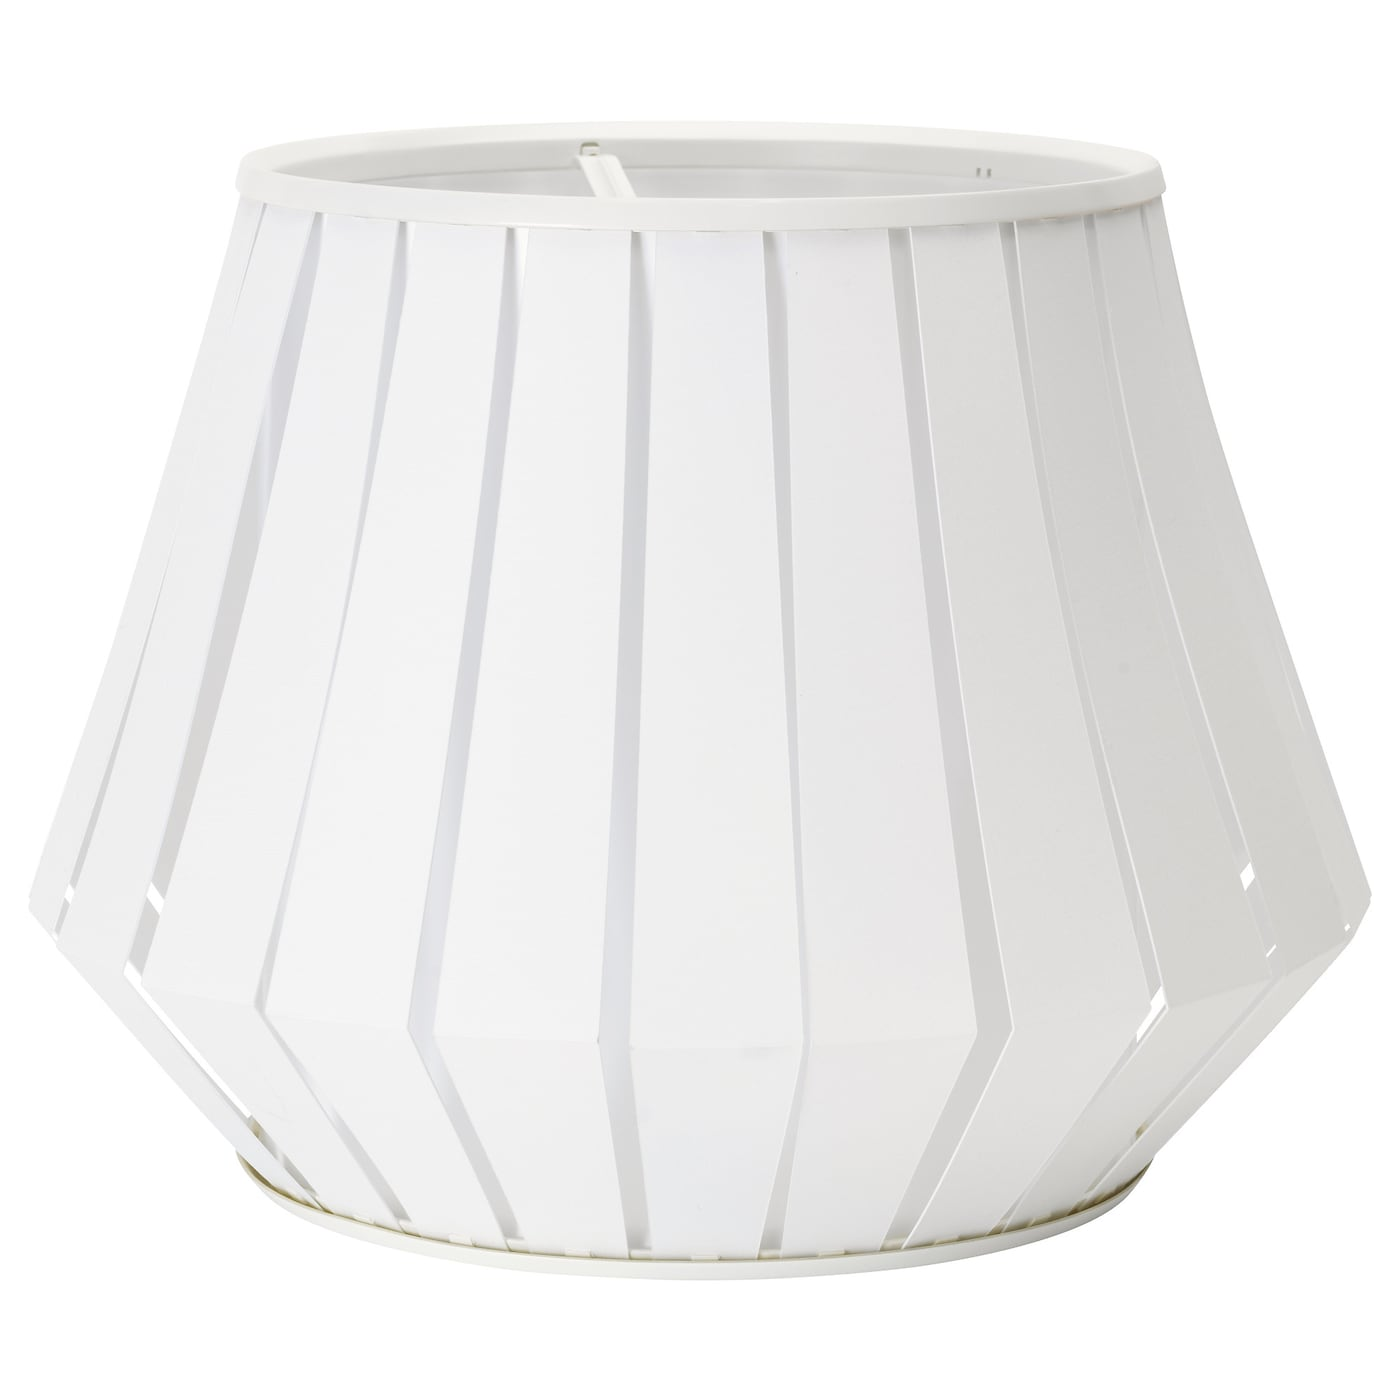 Lamp shades light shades ikea ikea lakheden lamp shade aloadofball Image collections